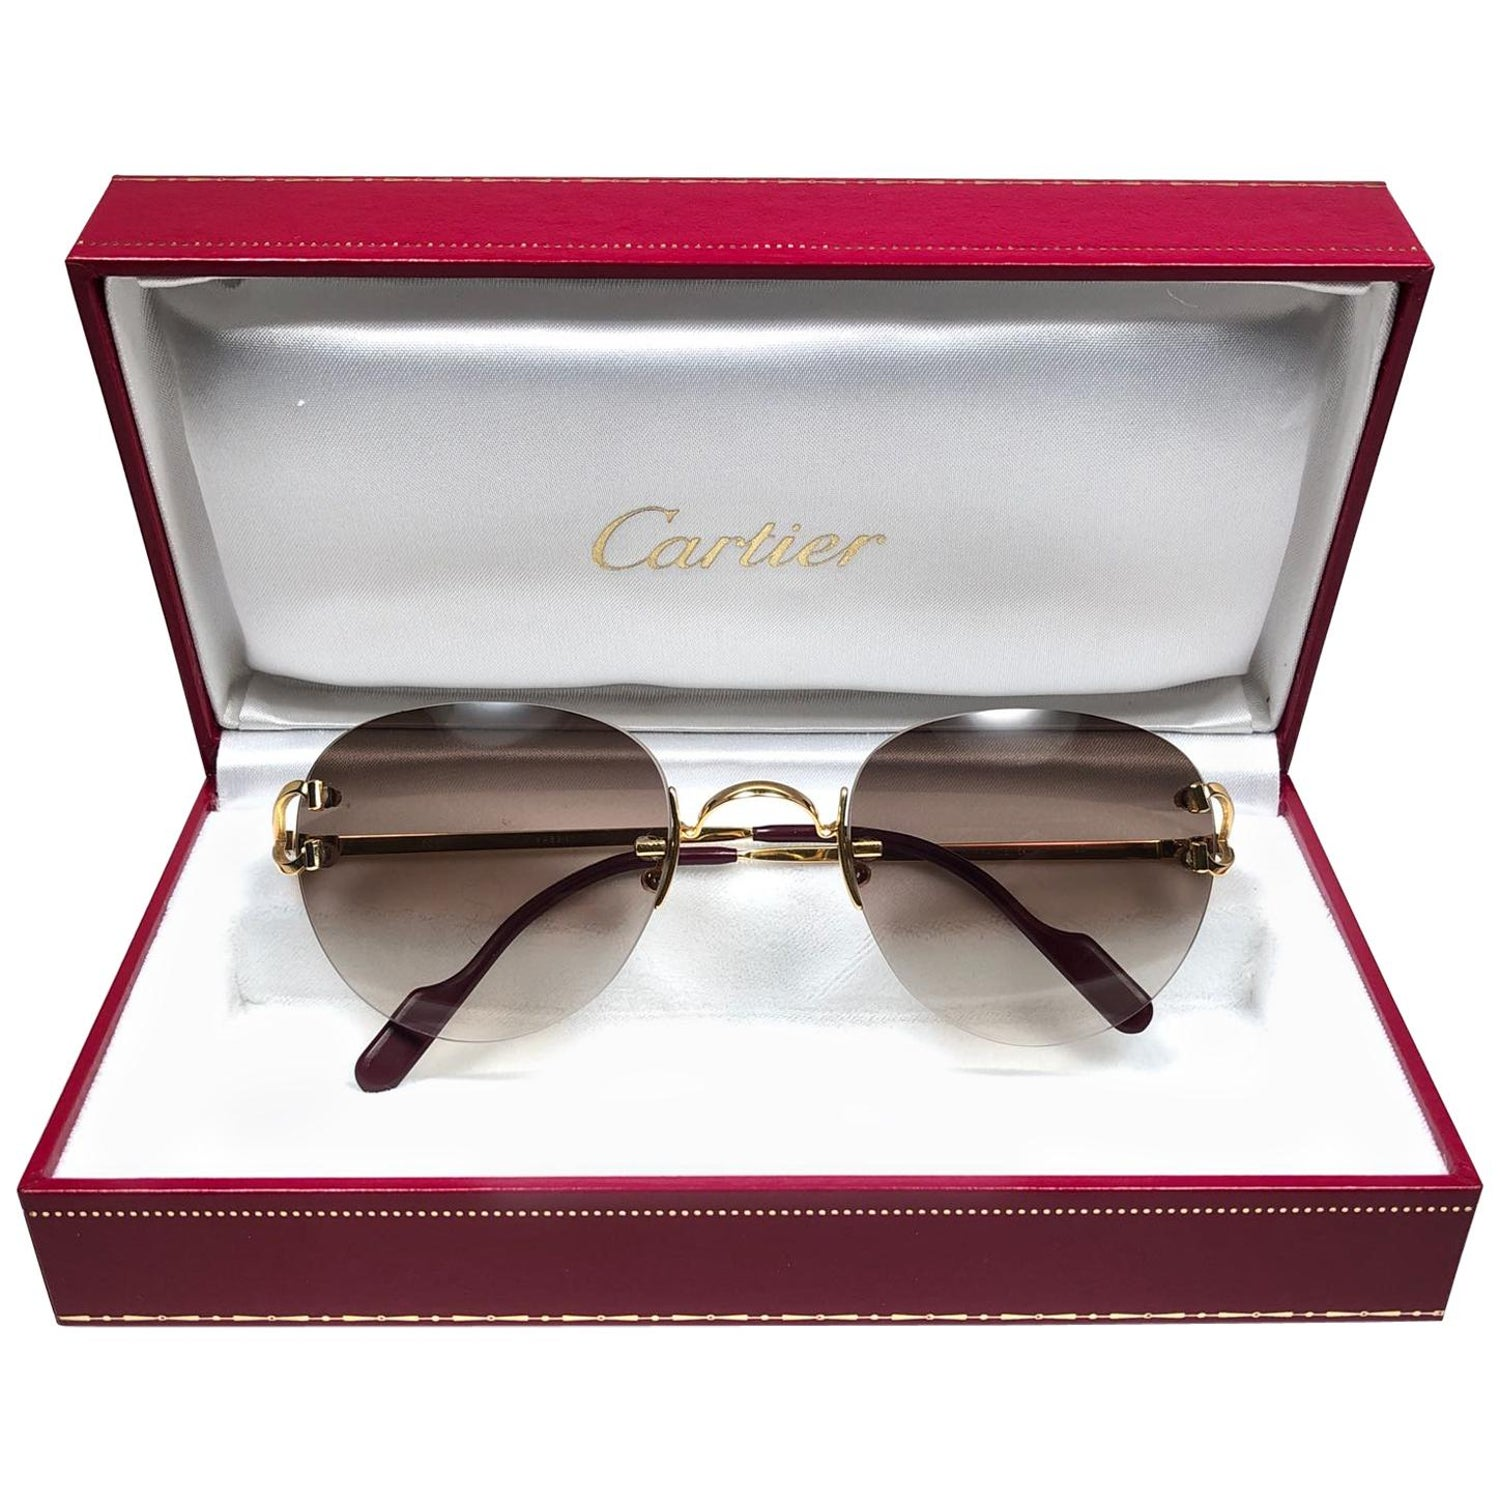 5cb28128256f Cartier Salisbury Rimless Gold 51mm Brown Gradient Lens France Sunglasses  at 1stdibs